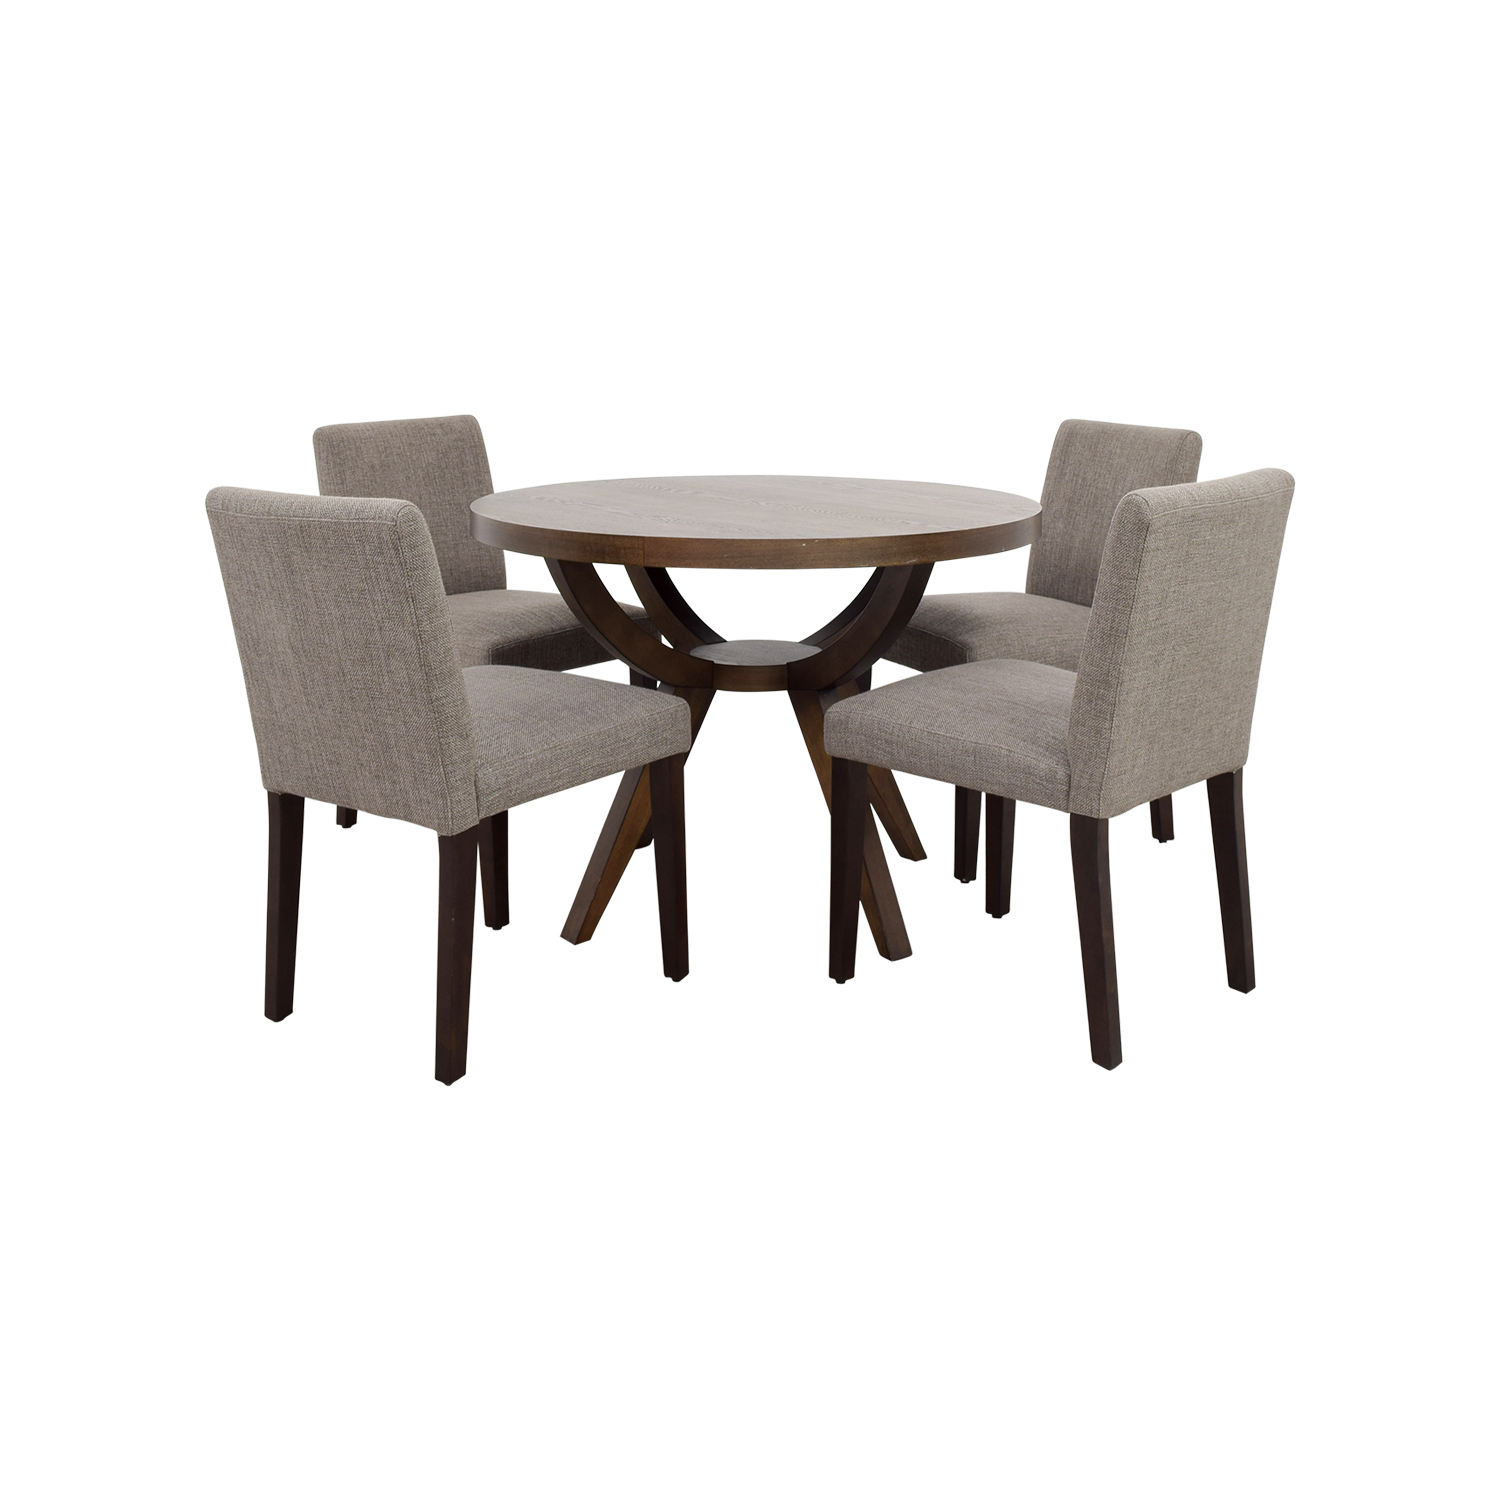 West Elm West Elm Arc Base Pedestal Table and Chairs brown and gray